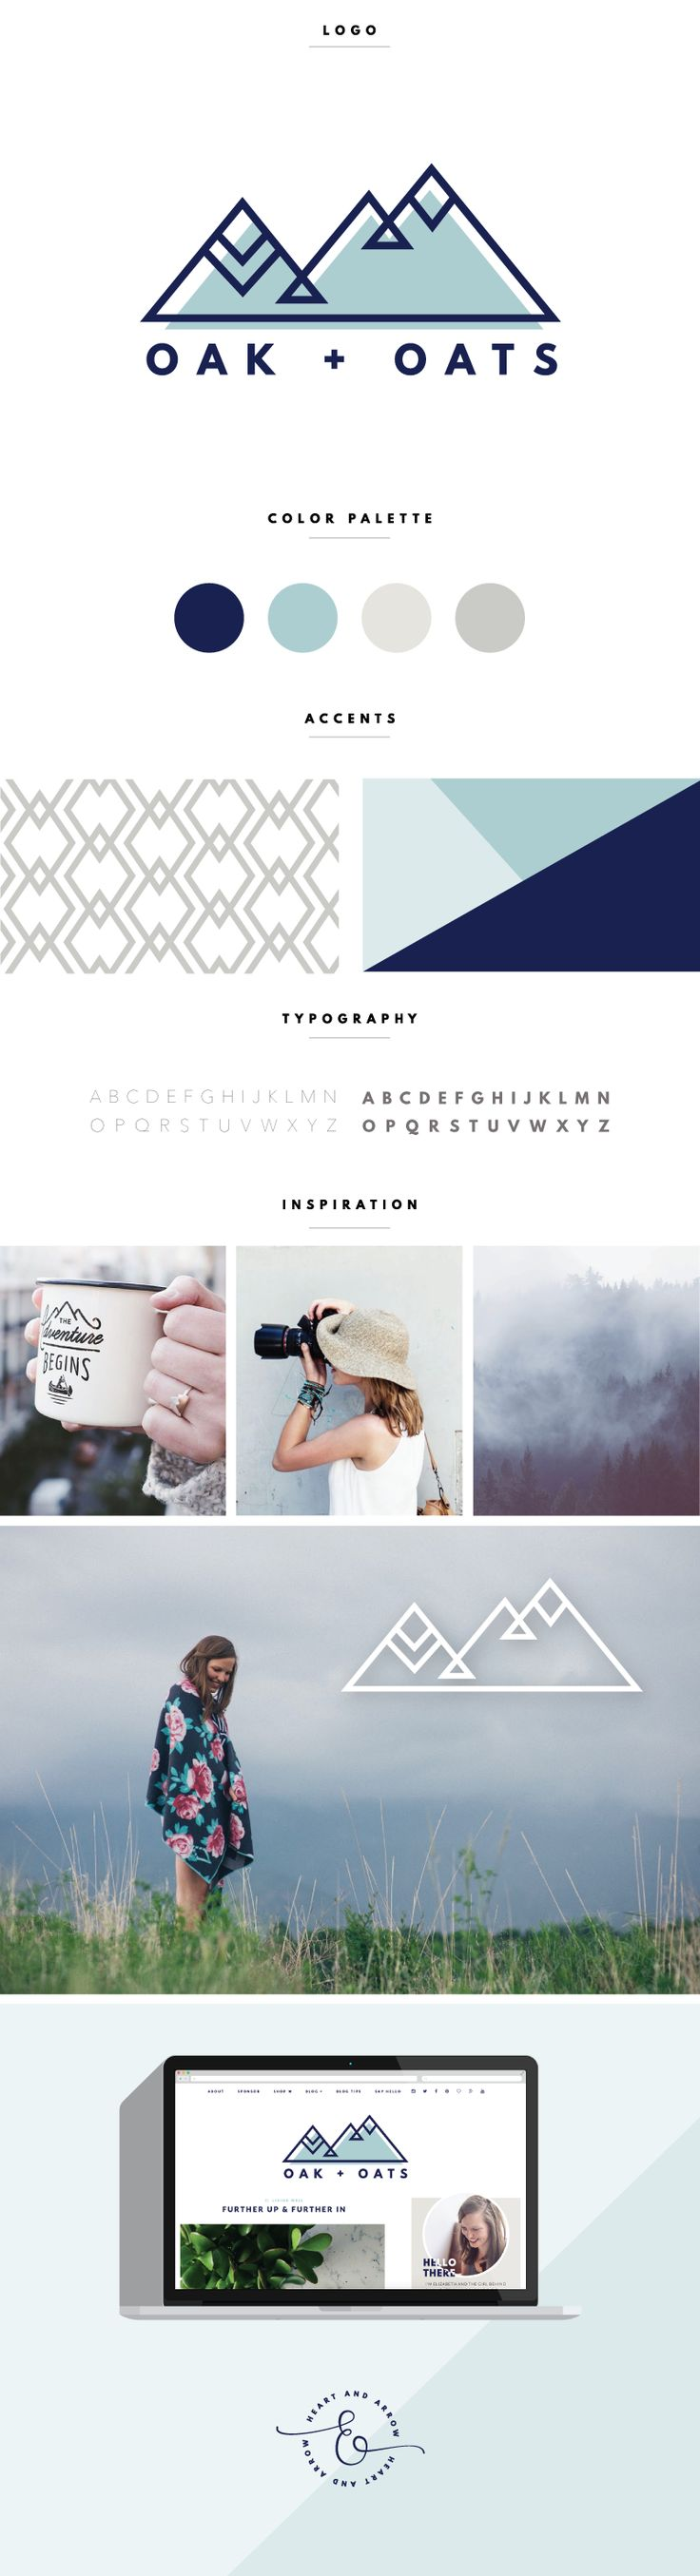 Modern Geometric Blog Logo and Design / by Heart & Arrow